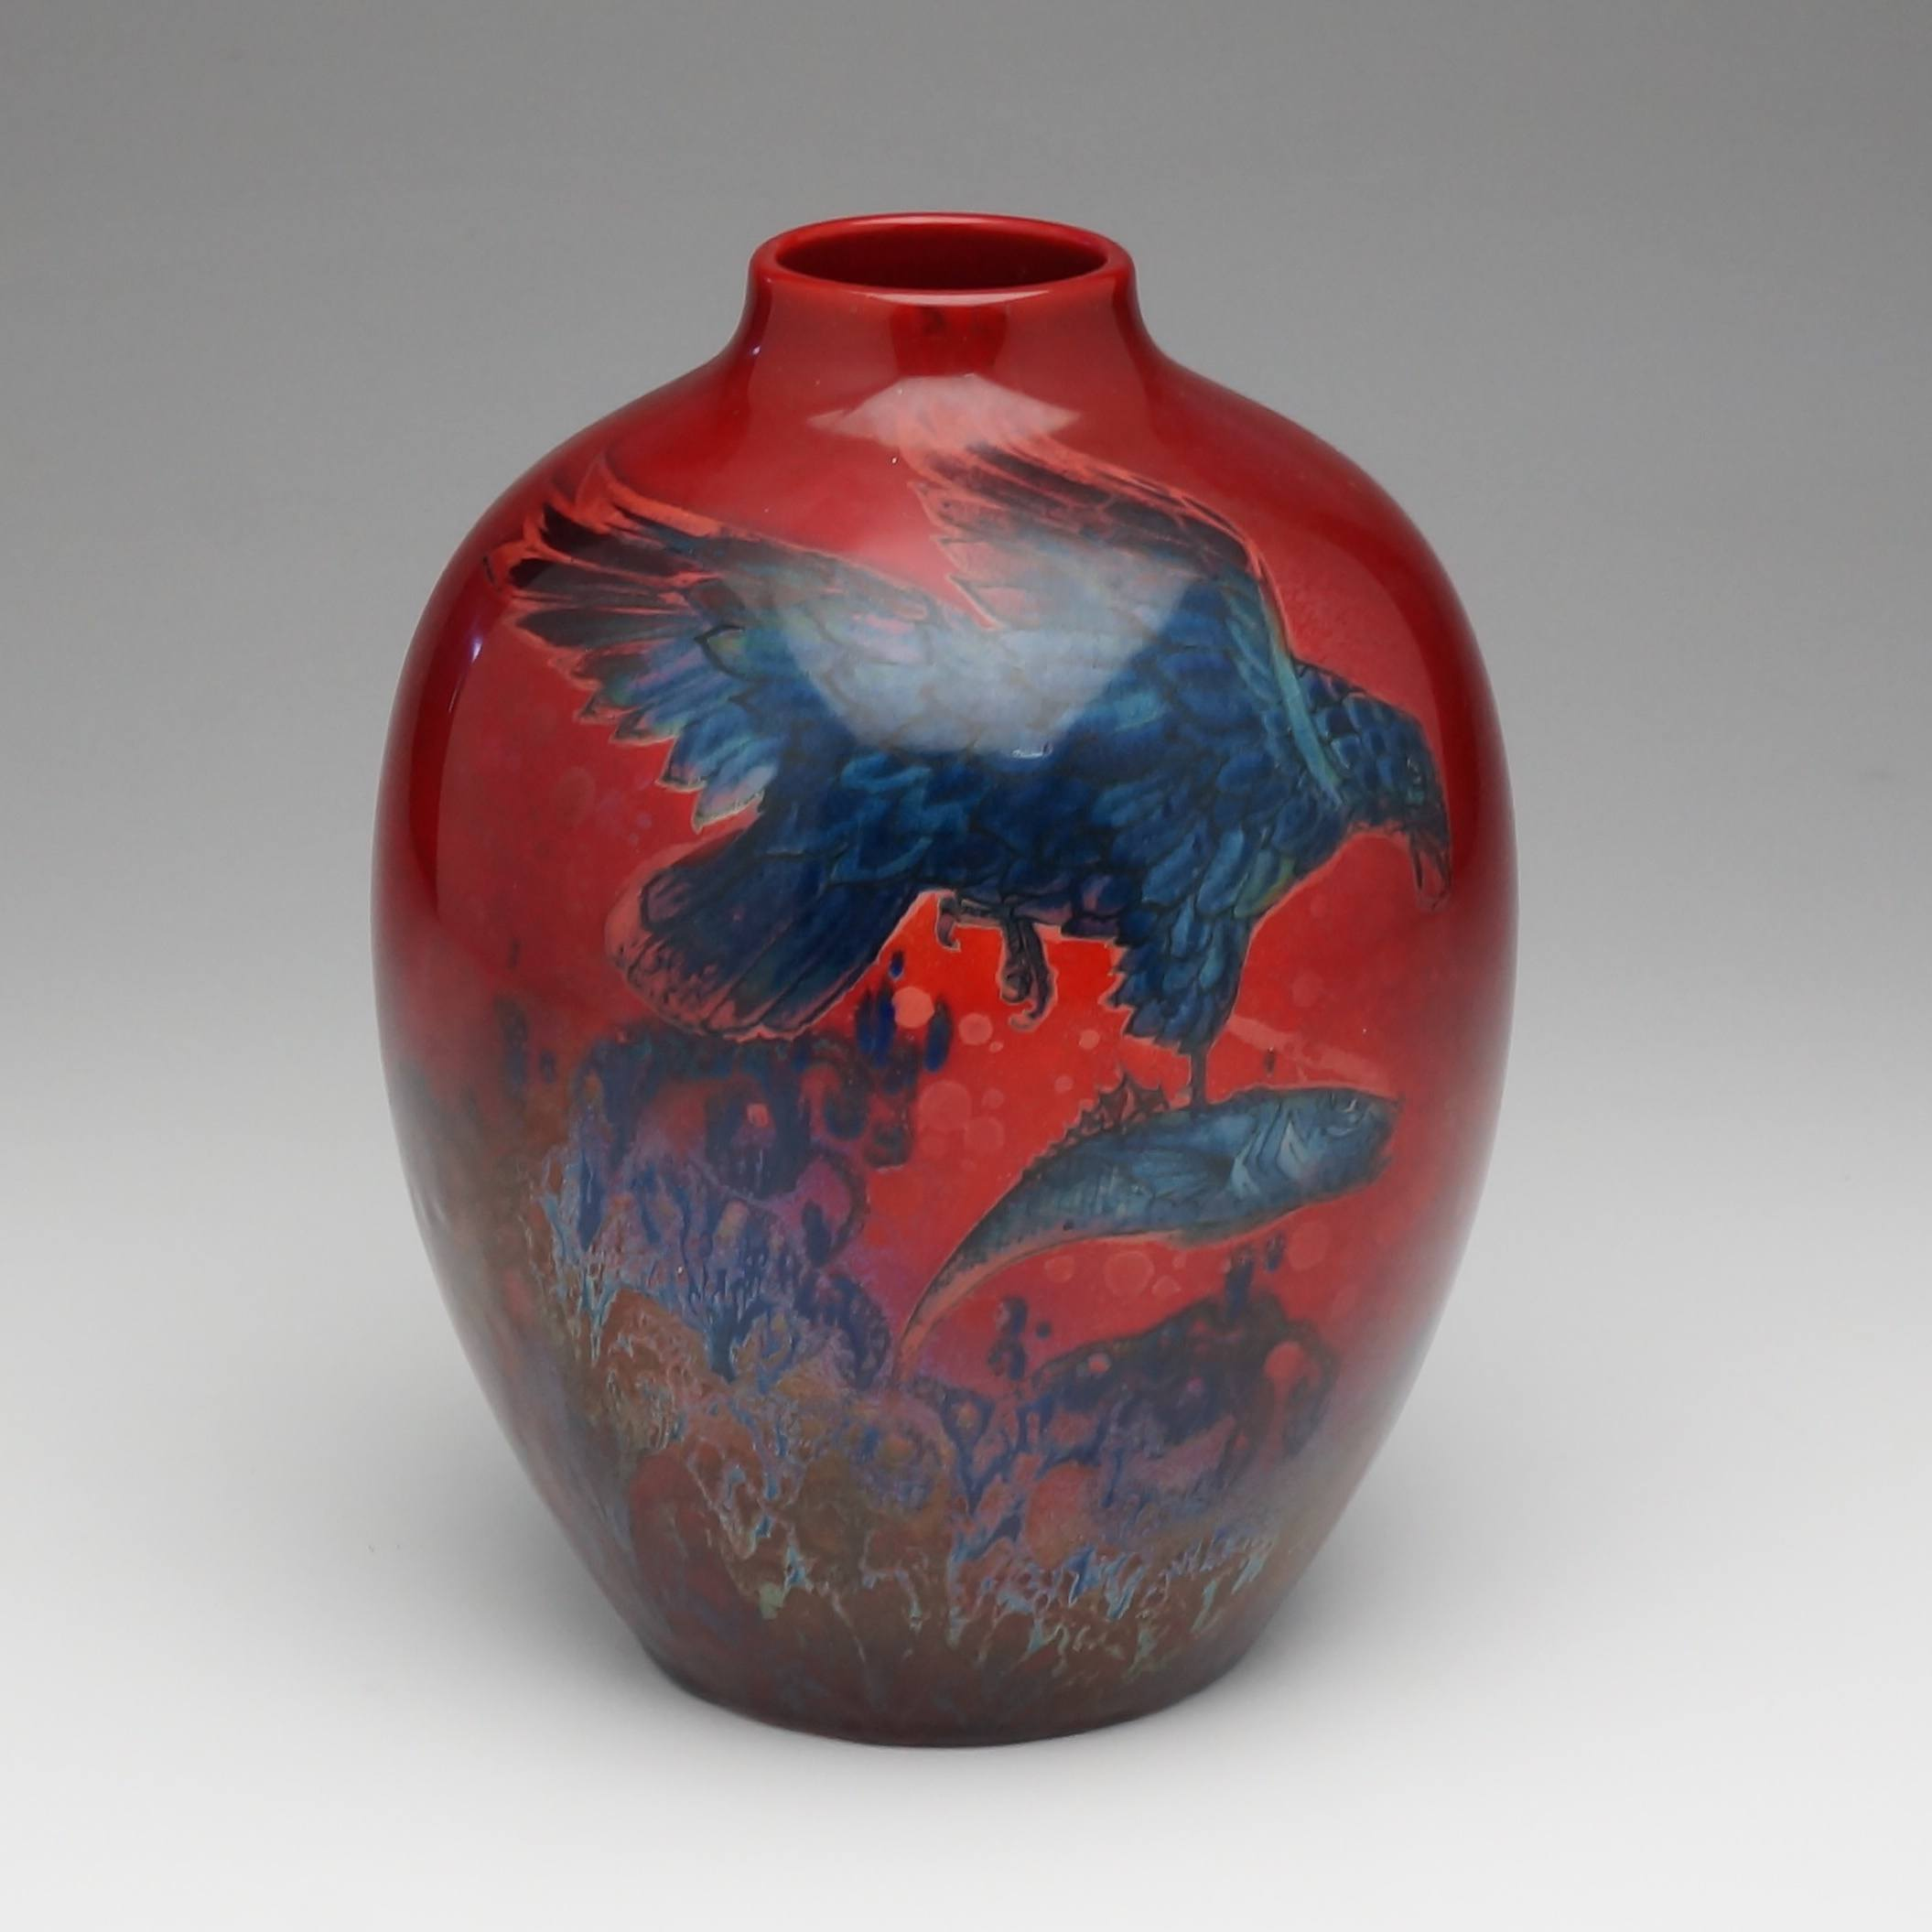 'Royal Doulton Sung Vase Hand Painted with Eagle and Fish by Charles Noke'